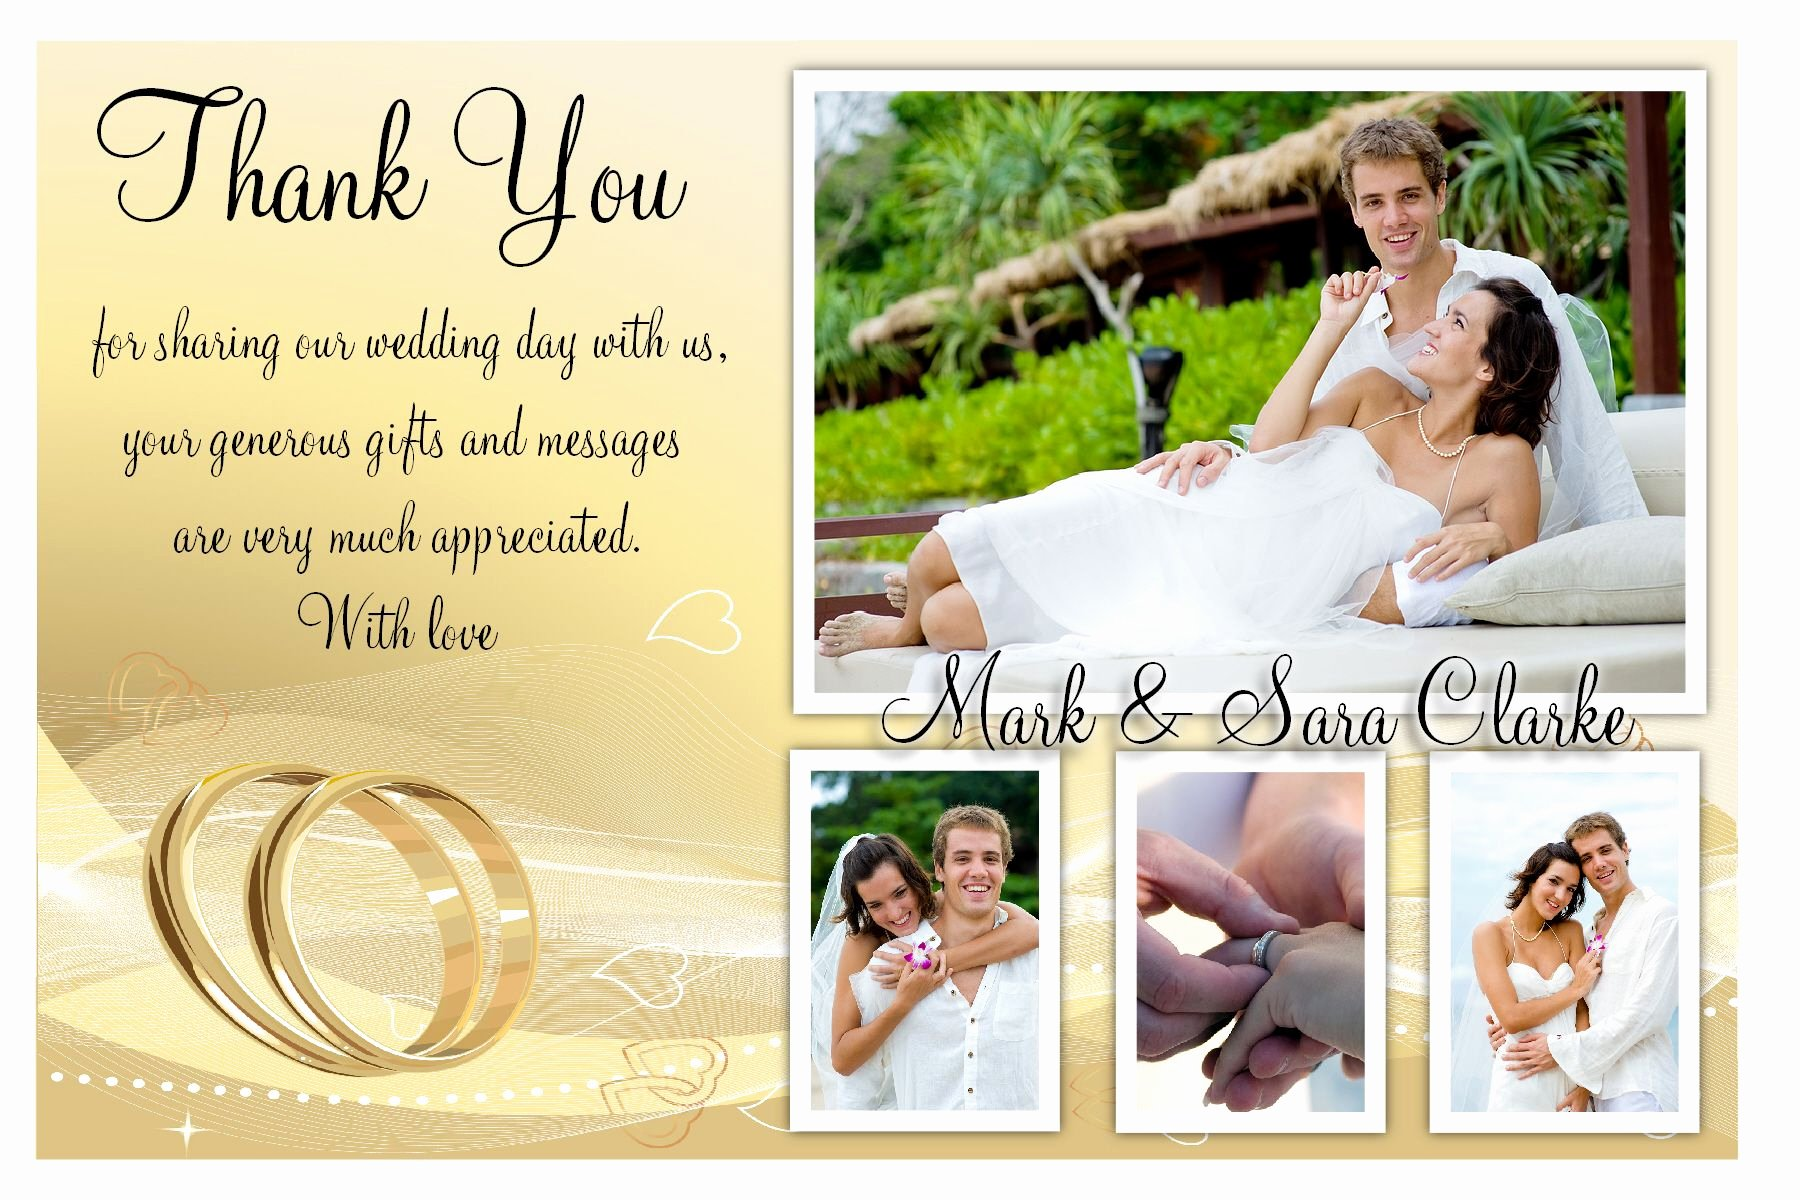 Wedding Thank You Card Template Inspirational How Make Best Wedding Thank You Cards Modern Ideas